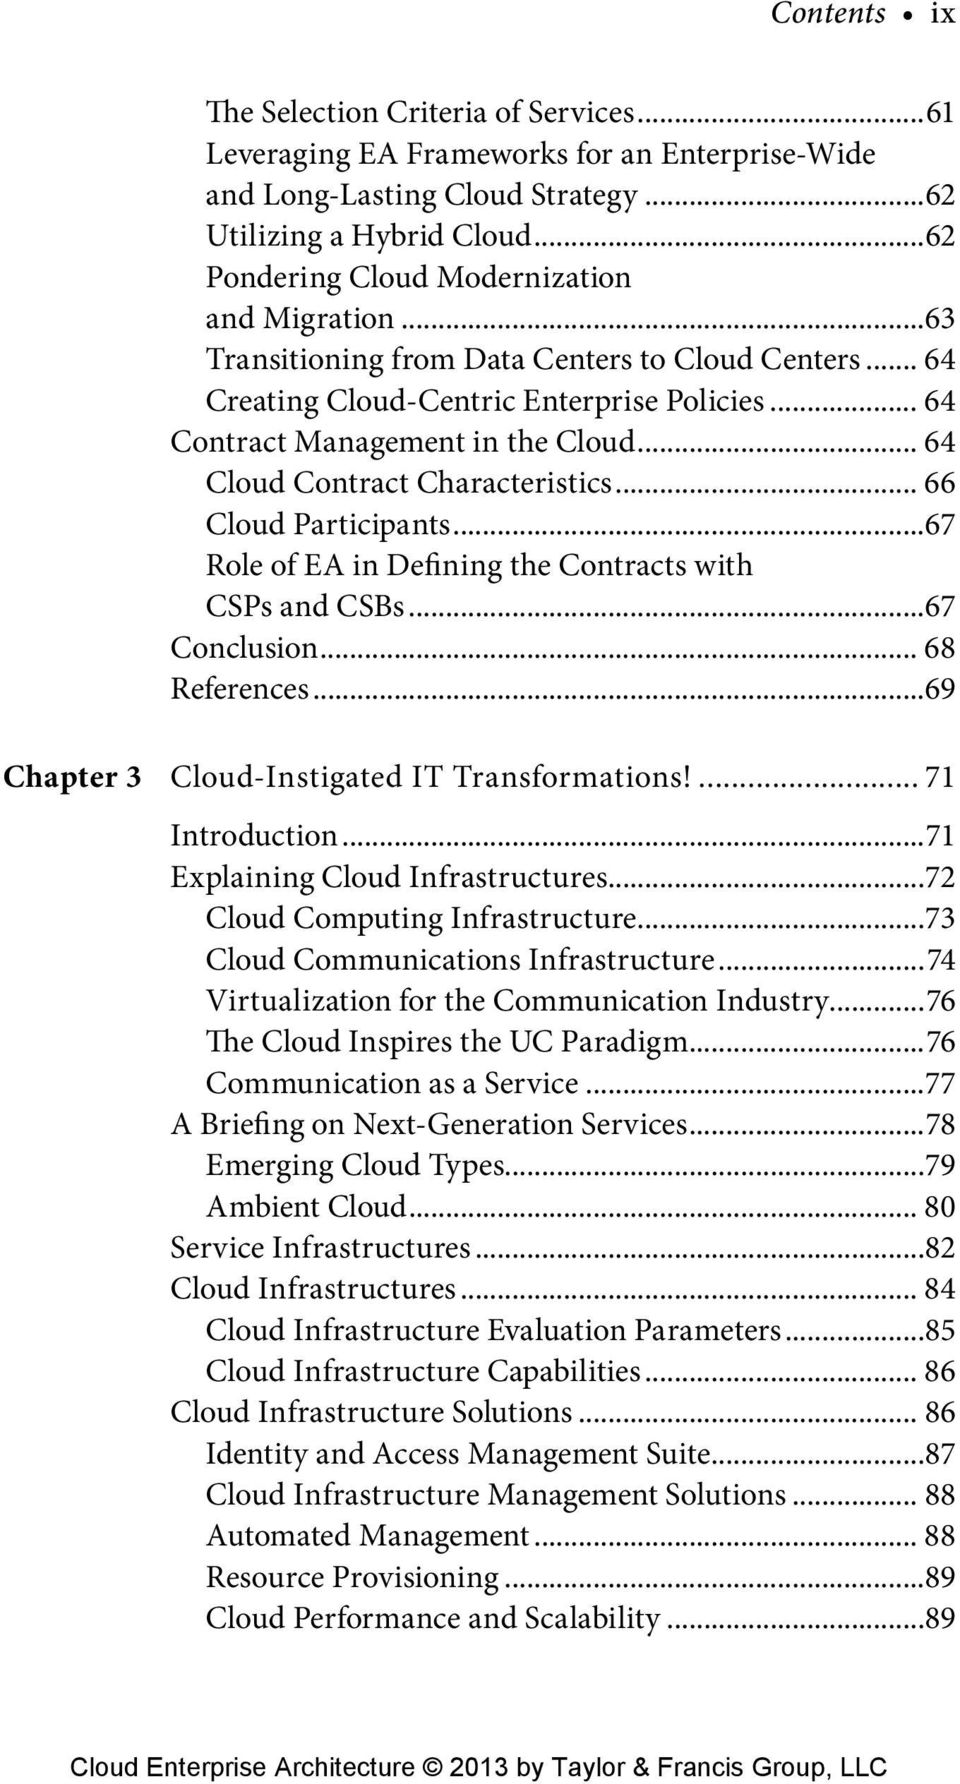 .. 64 Cloud Contract Characteristics... 66 Cloud Participants...67 Role of EA in Defining the Contracts with CSPs and CSBs...67 Conclusion... 68 References.